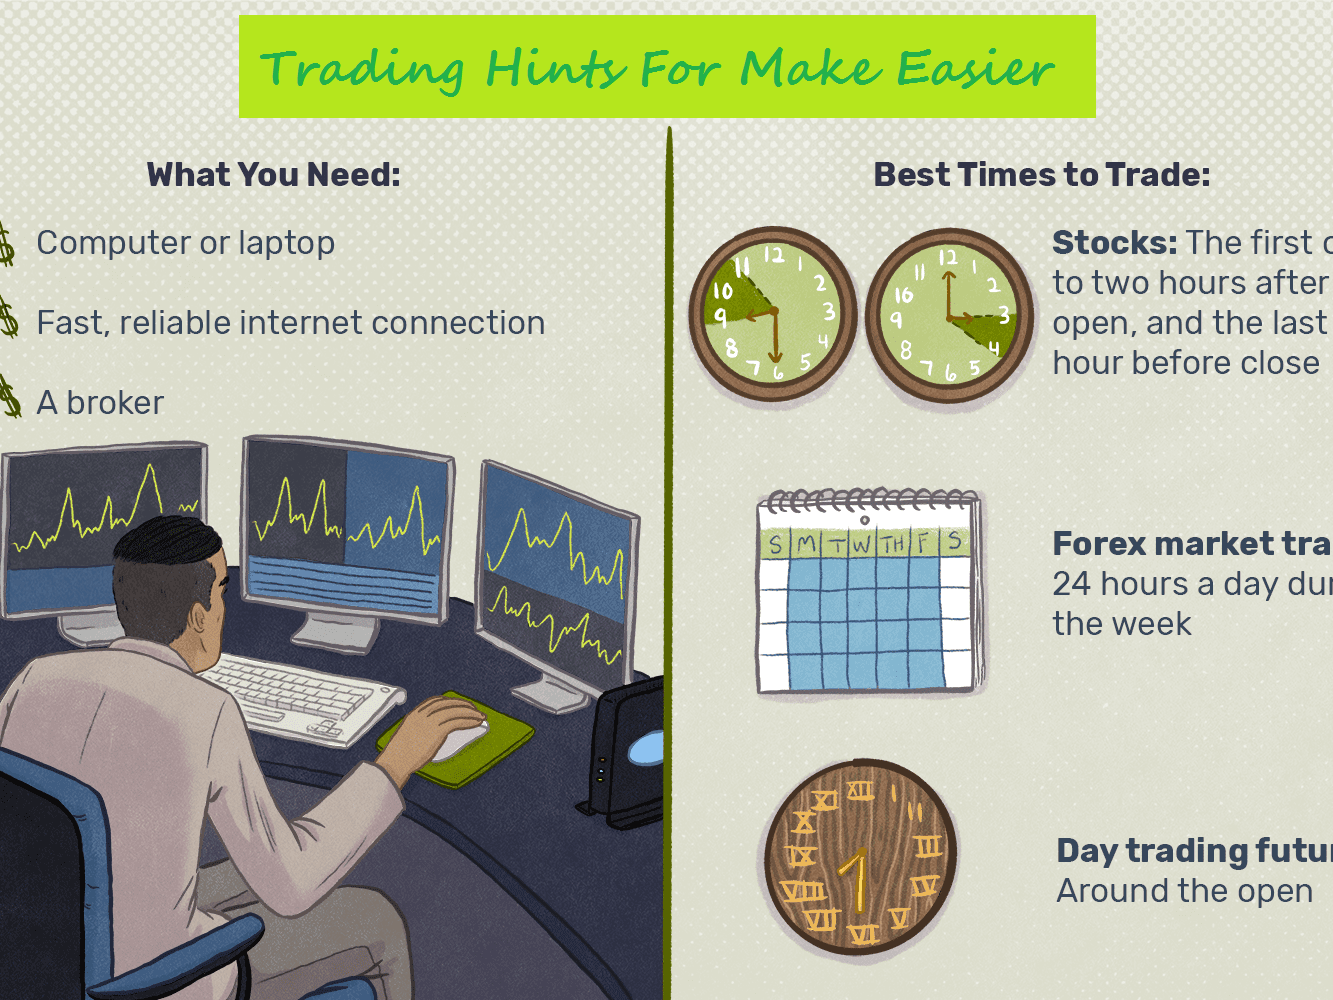 Trading best 7 Hints to Make Easier